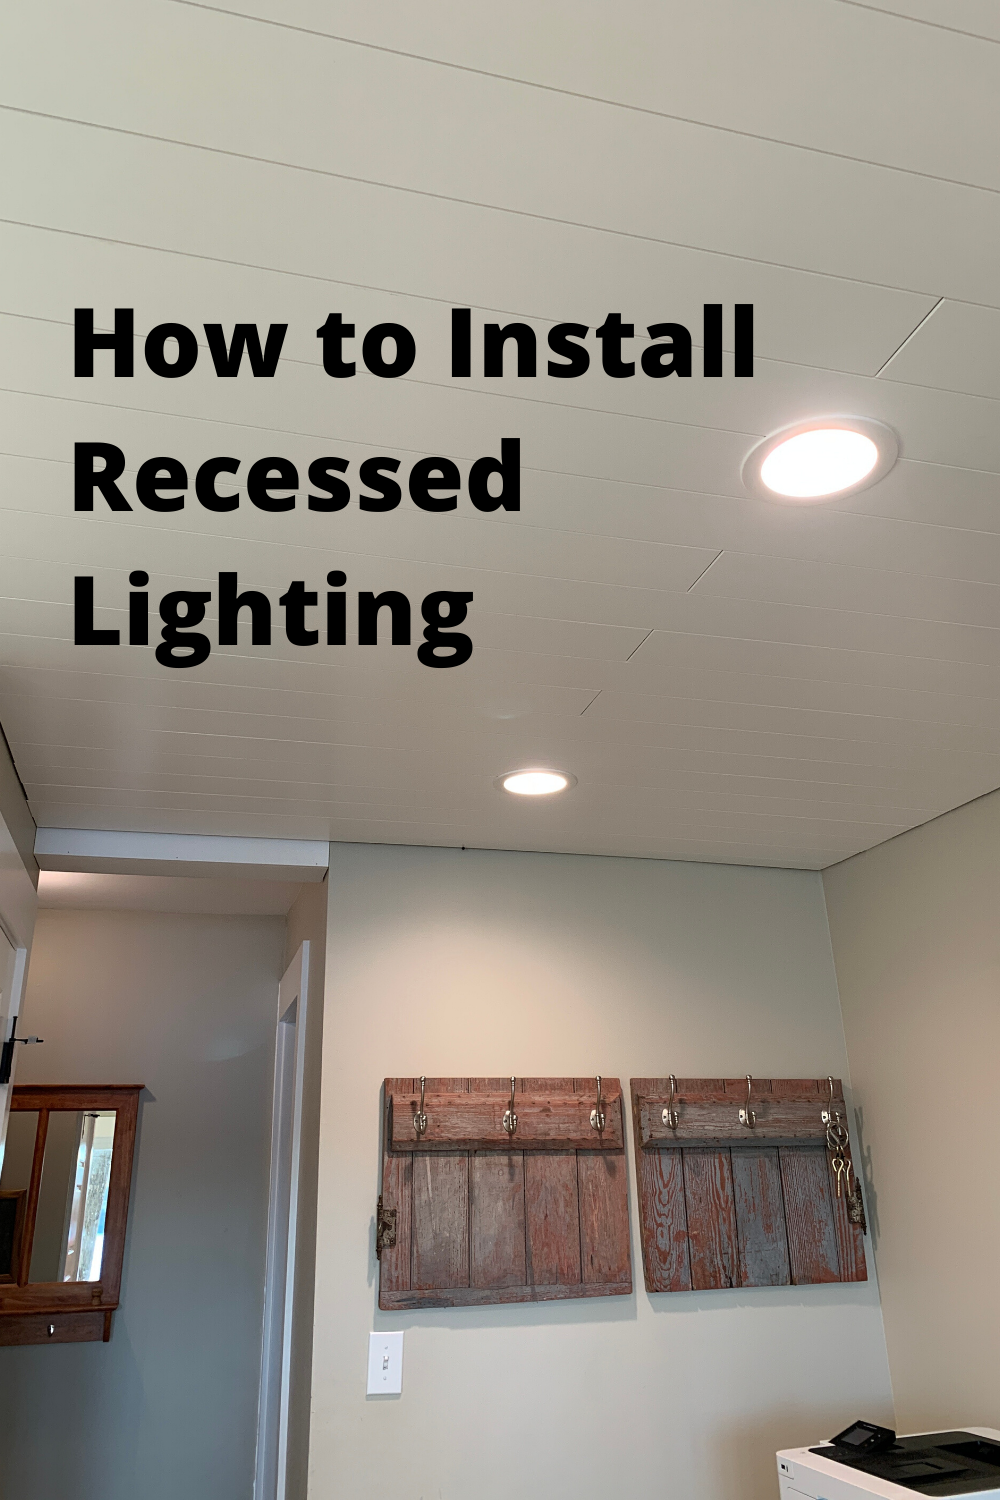 How To Install Led Recessed Lighting Installing Recessed Lighting Recessed Lighting Led Recessed Lighting